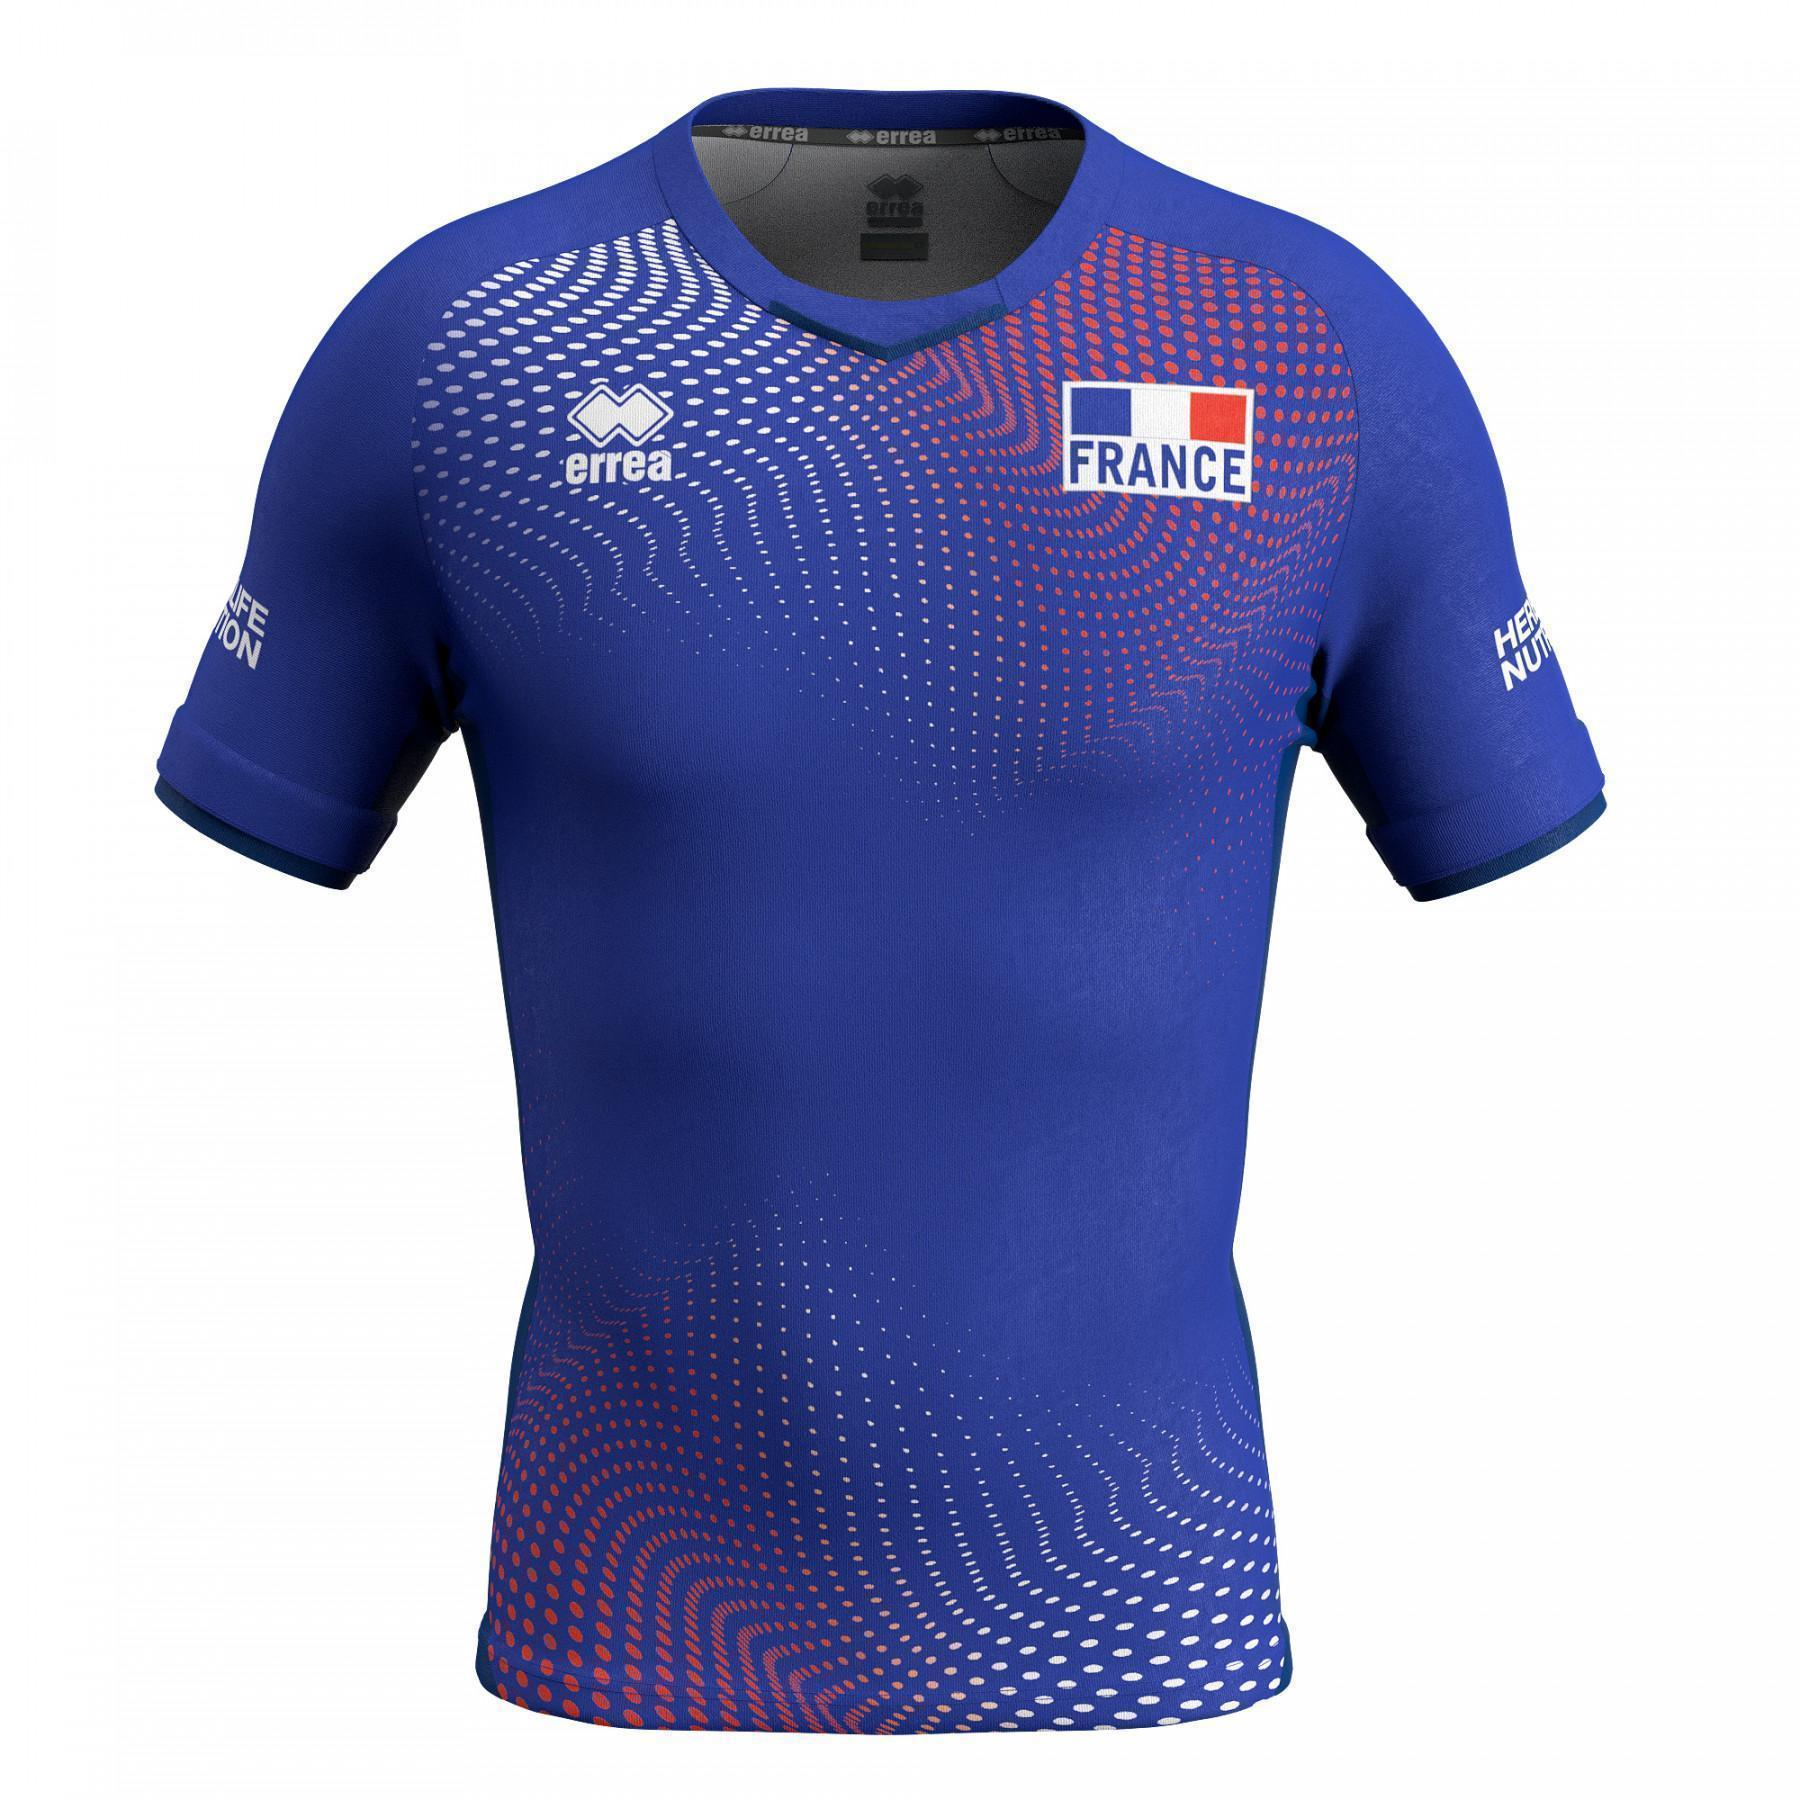 France 2020 Team home jersey for children